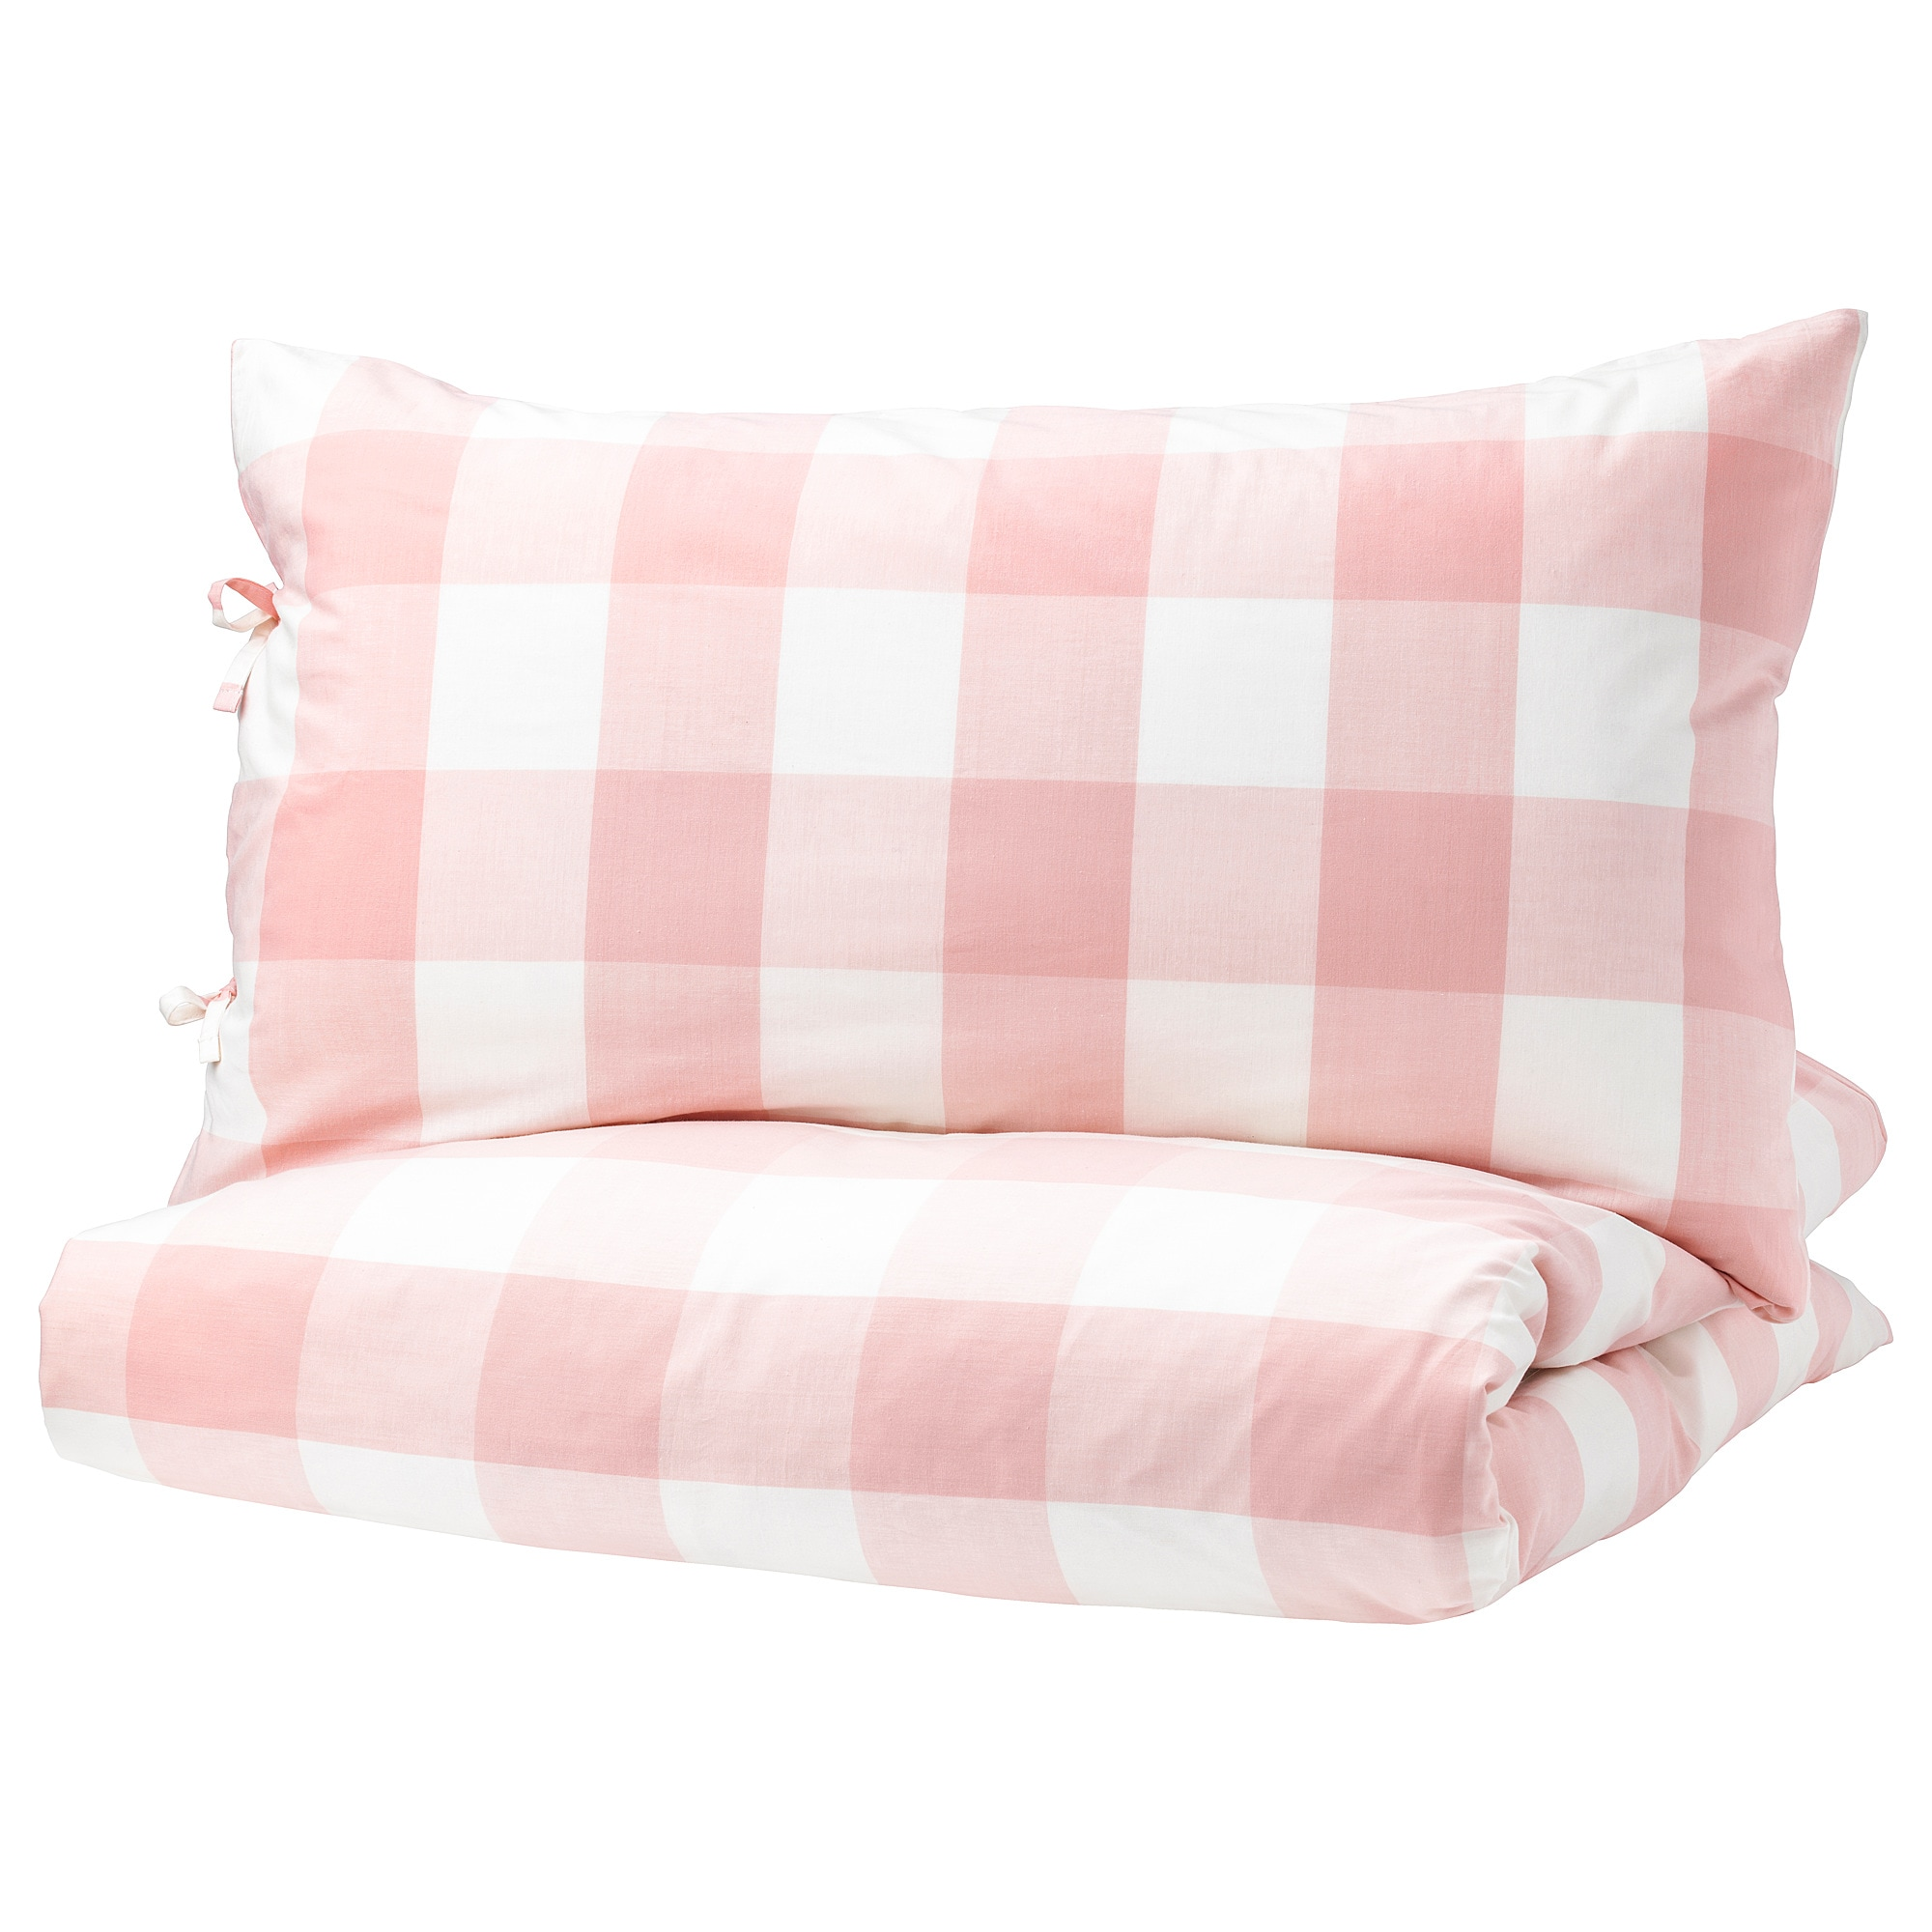 Ikea Duvet Covers Emmie Ruta Duvet Cover And Pillowcase S Light Pink White